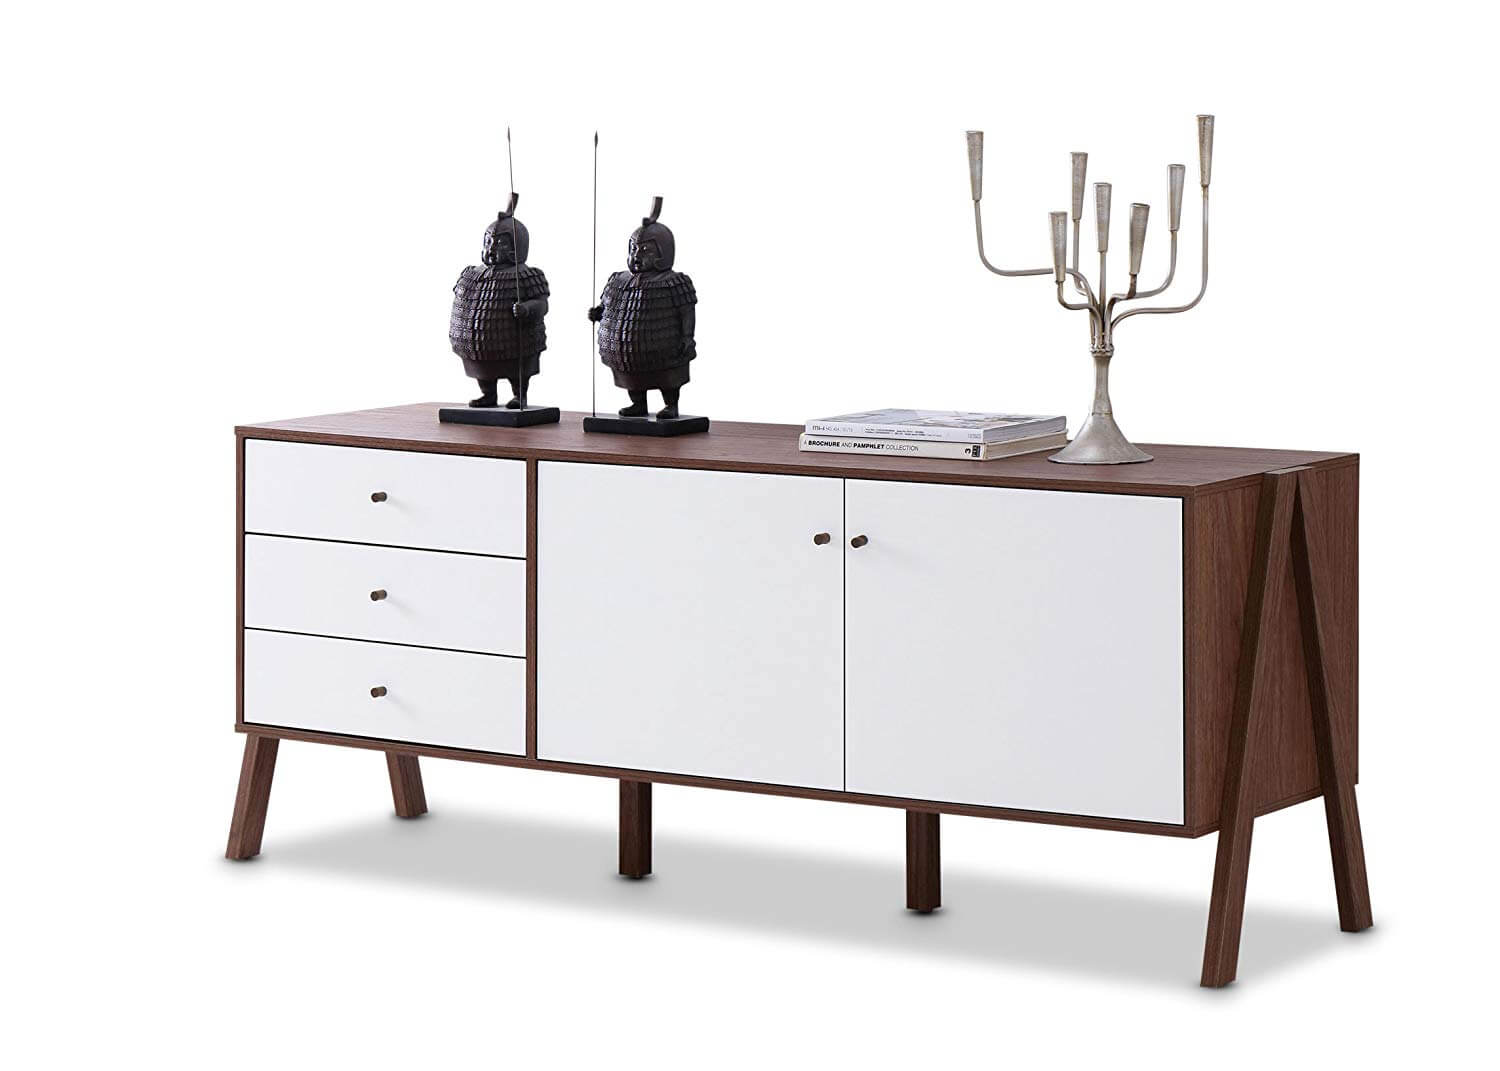 A Scandinavian-style credenza with a dark-wood facade and white cabinets.